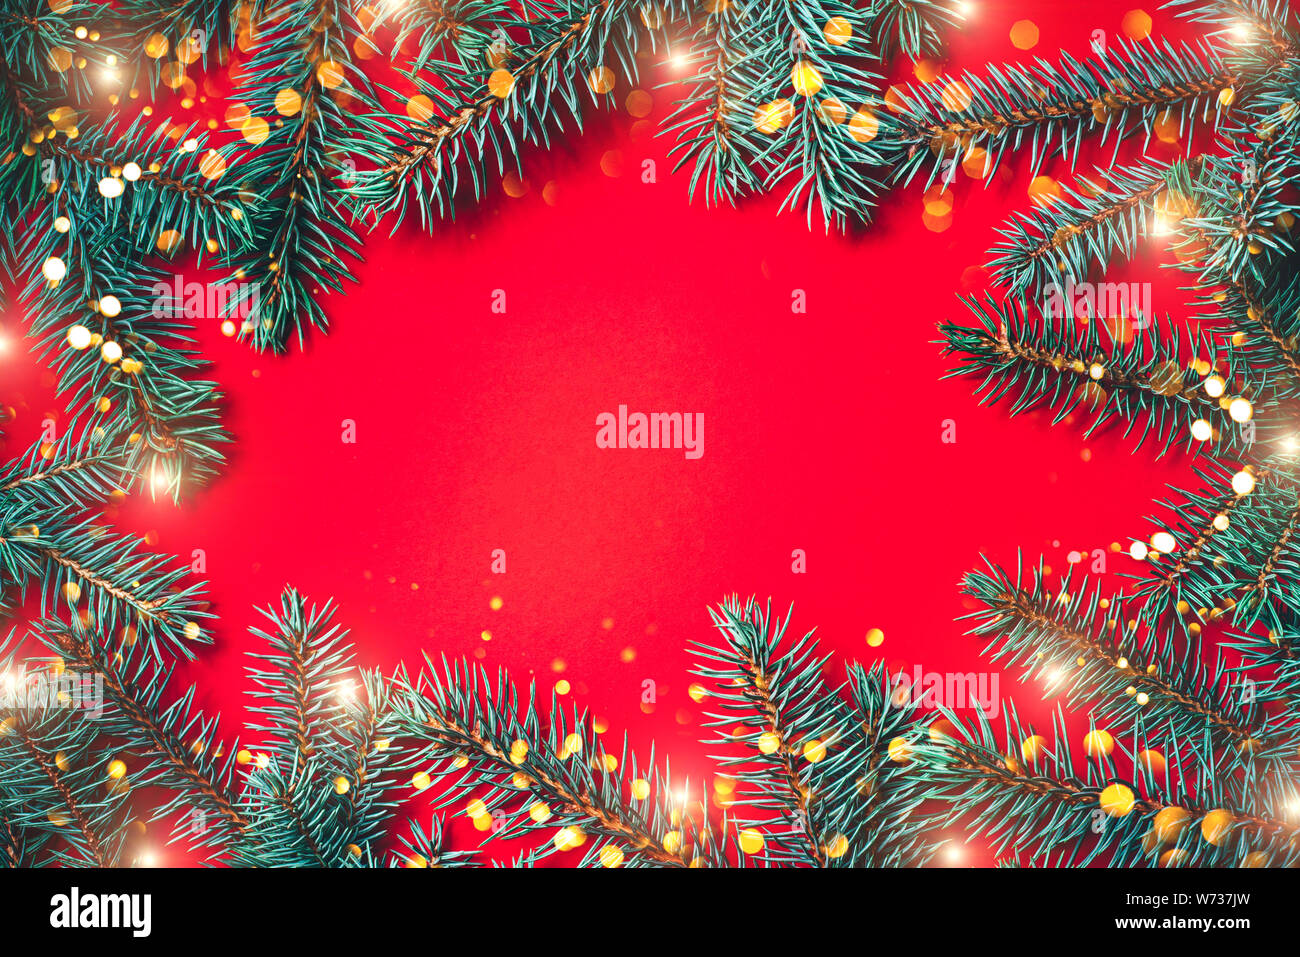 Fir Branches With Blurred Lights Garland On A Red Background